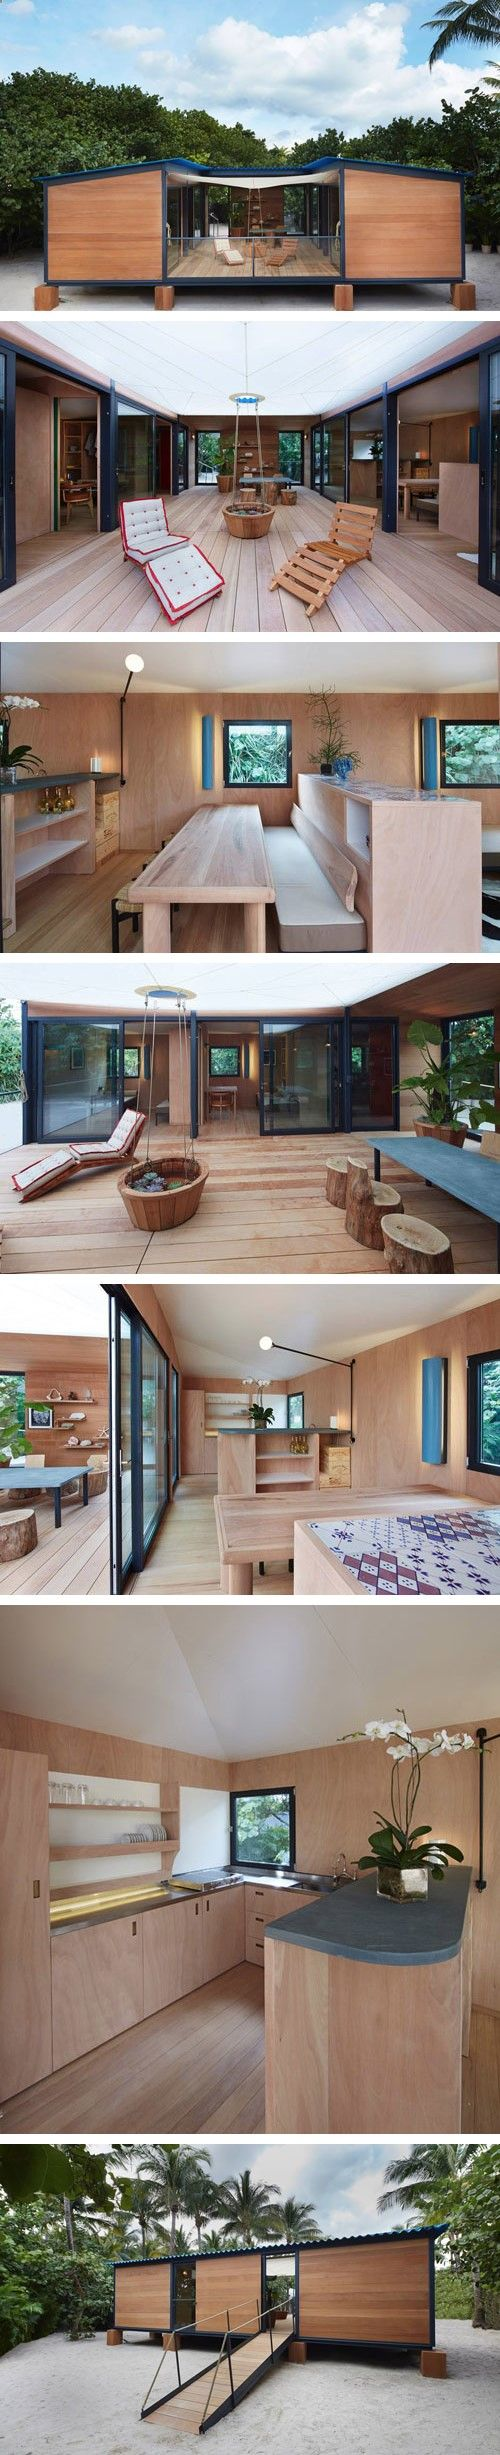 Container House - Charlotte Perriand La Maison au Bord de lEau. Rebuilt for Art Basel Miami Beach with LVs support Who Else Wants Simple Step-By-Step Plans To Design And Build A Container Home From Scratch?